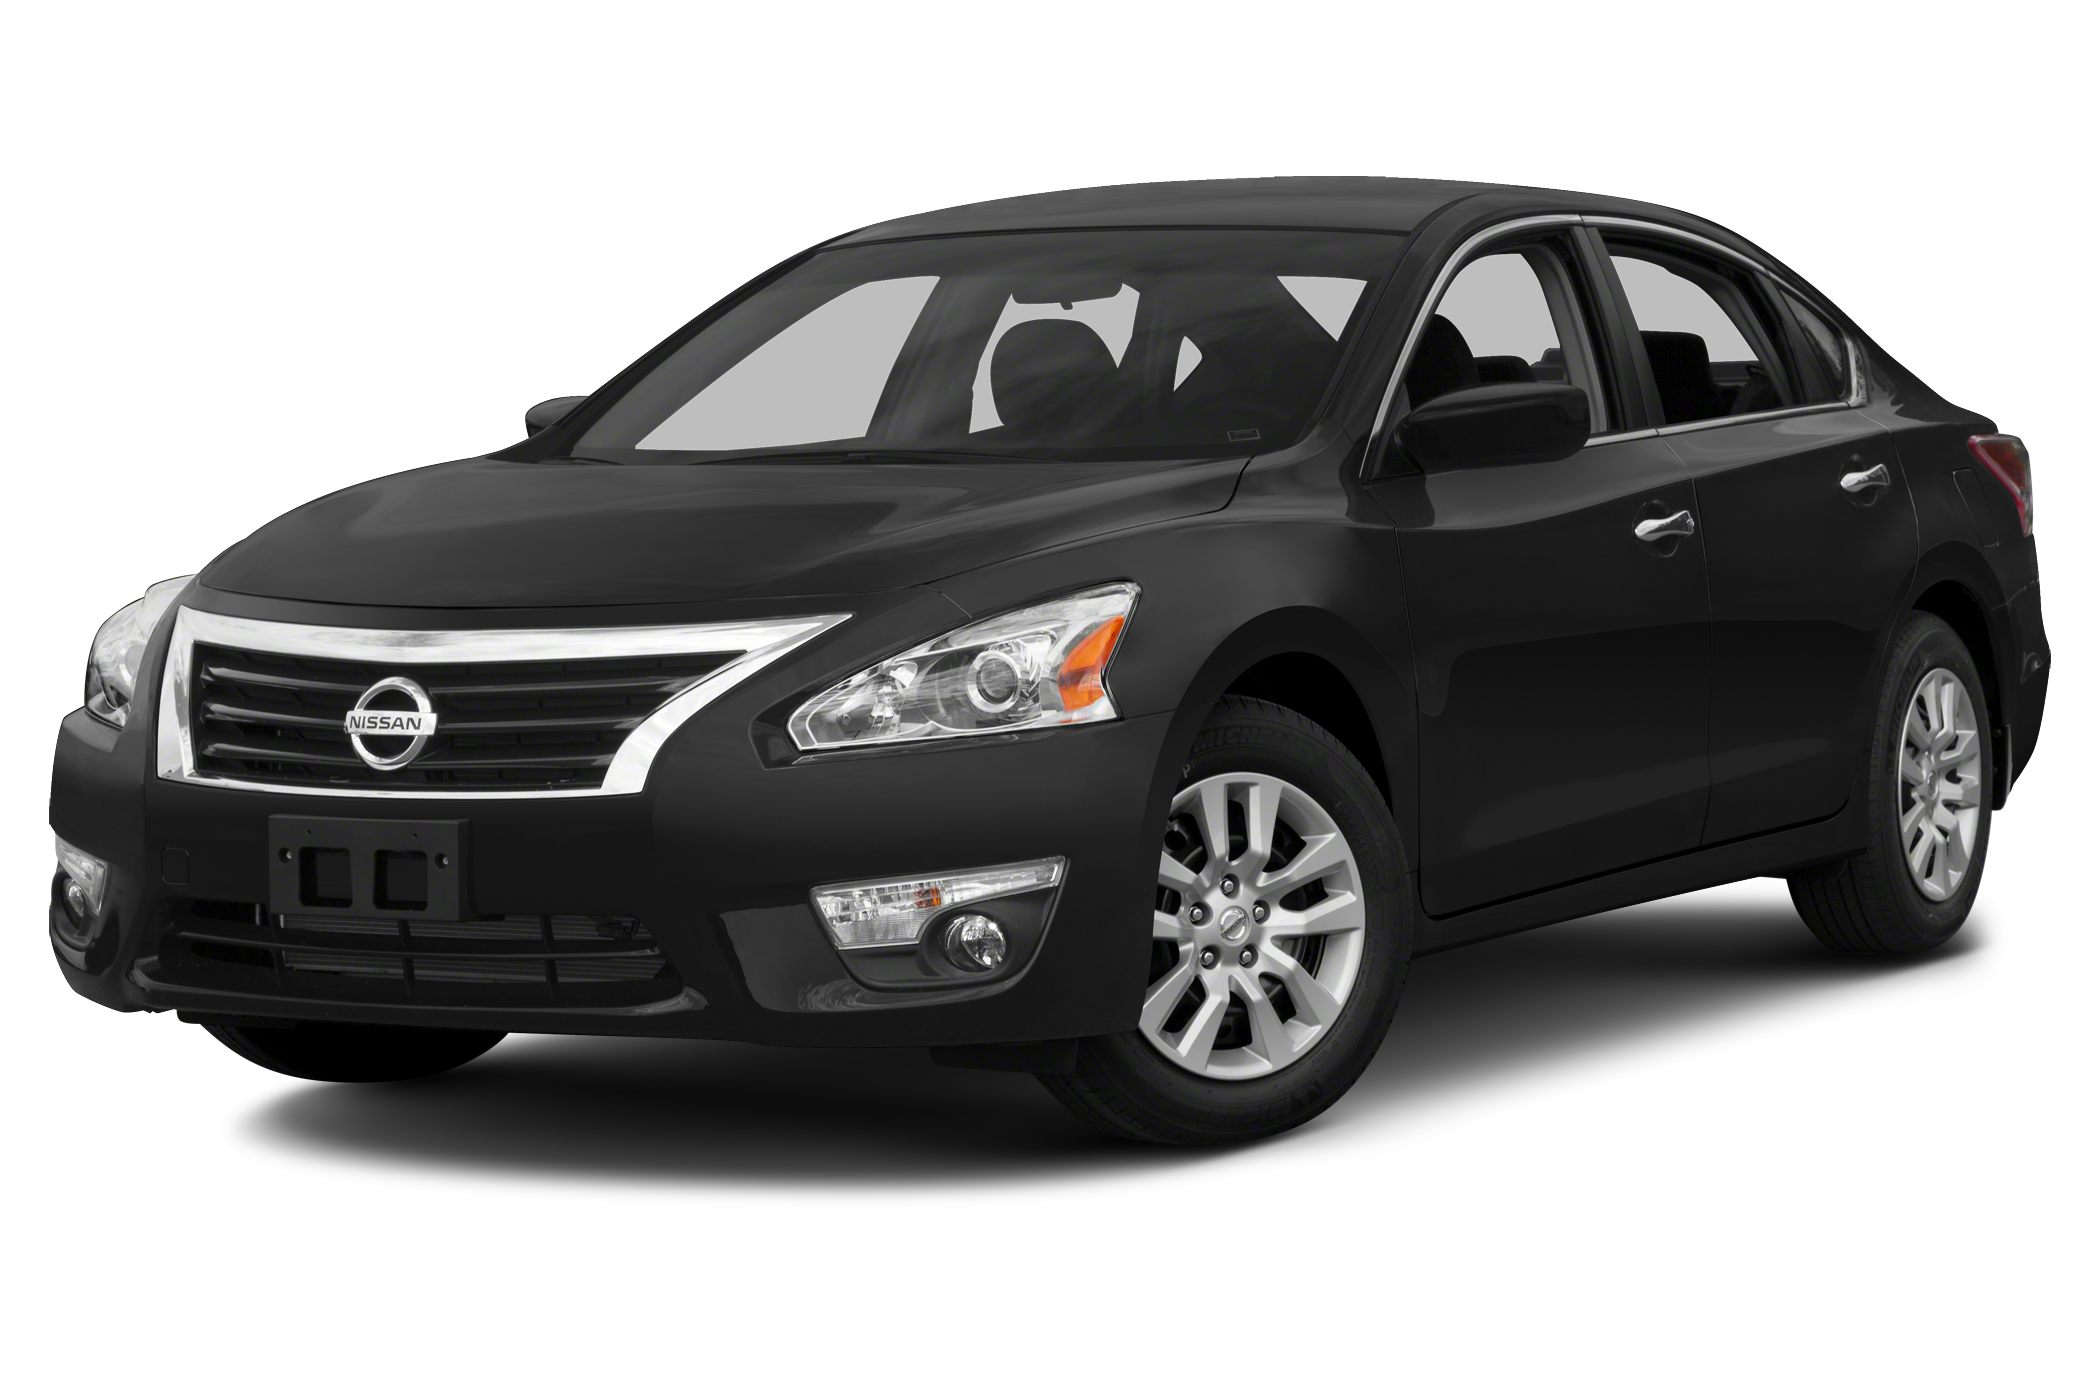 2015 Nissan Altima 2.5 S Sedan for sale in Webster for $19,454 with 2 miles.